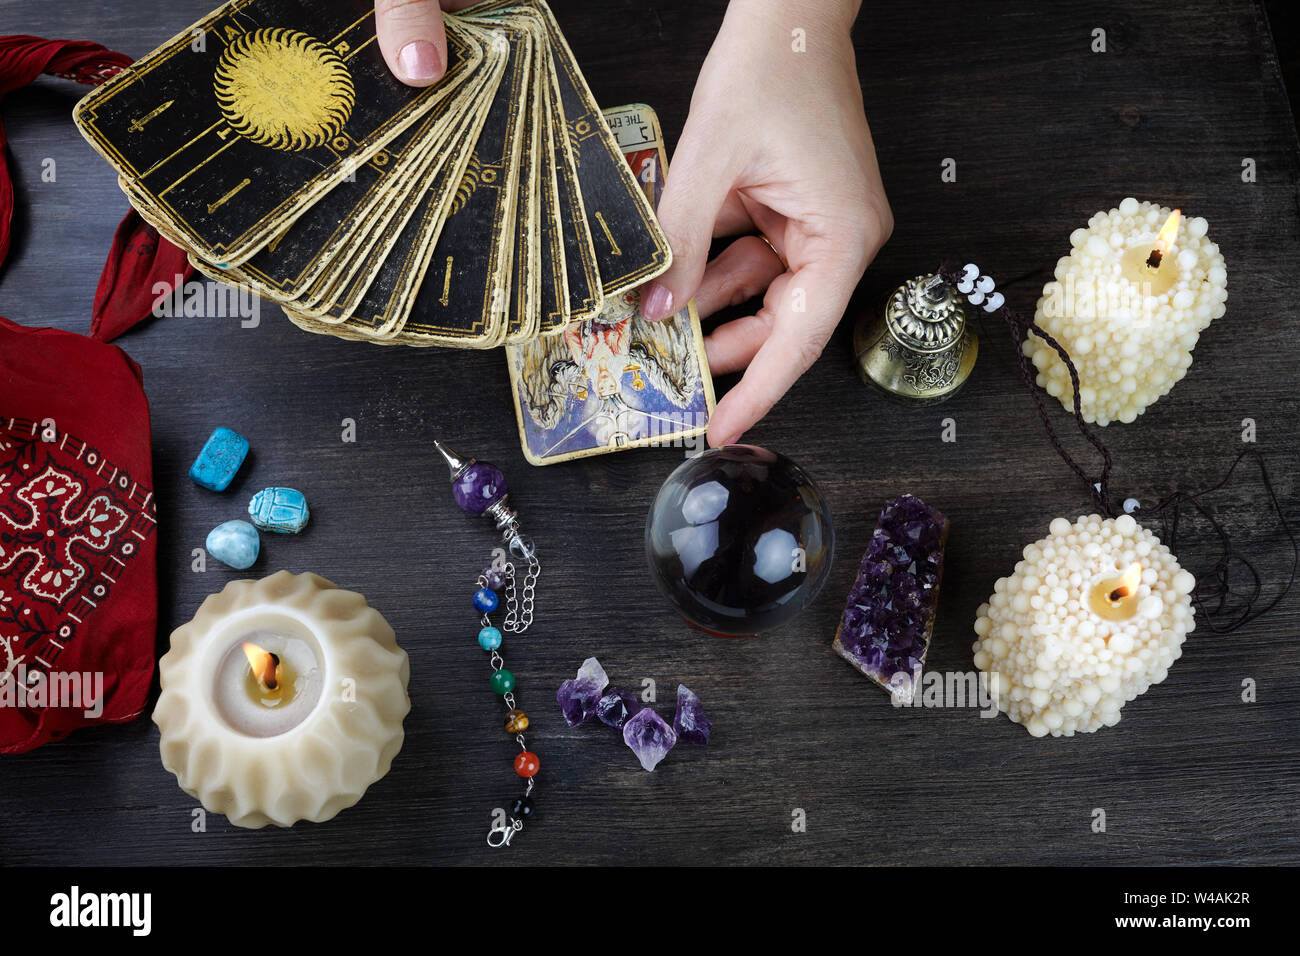 Fortune teller female hands and tarot cards on dark wooden table. Divination concept. Stock Photo